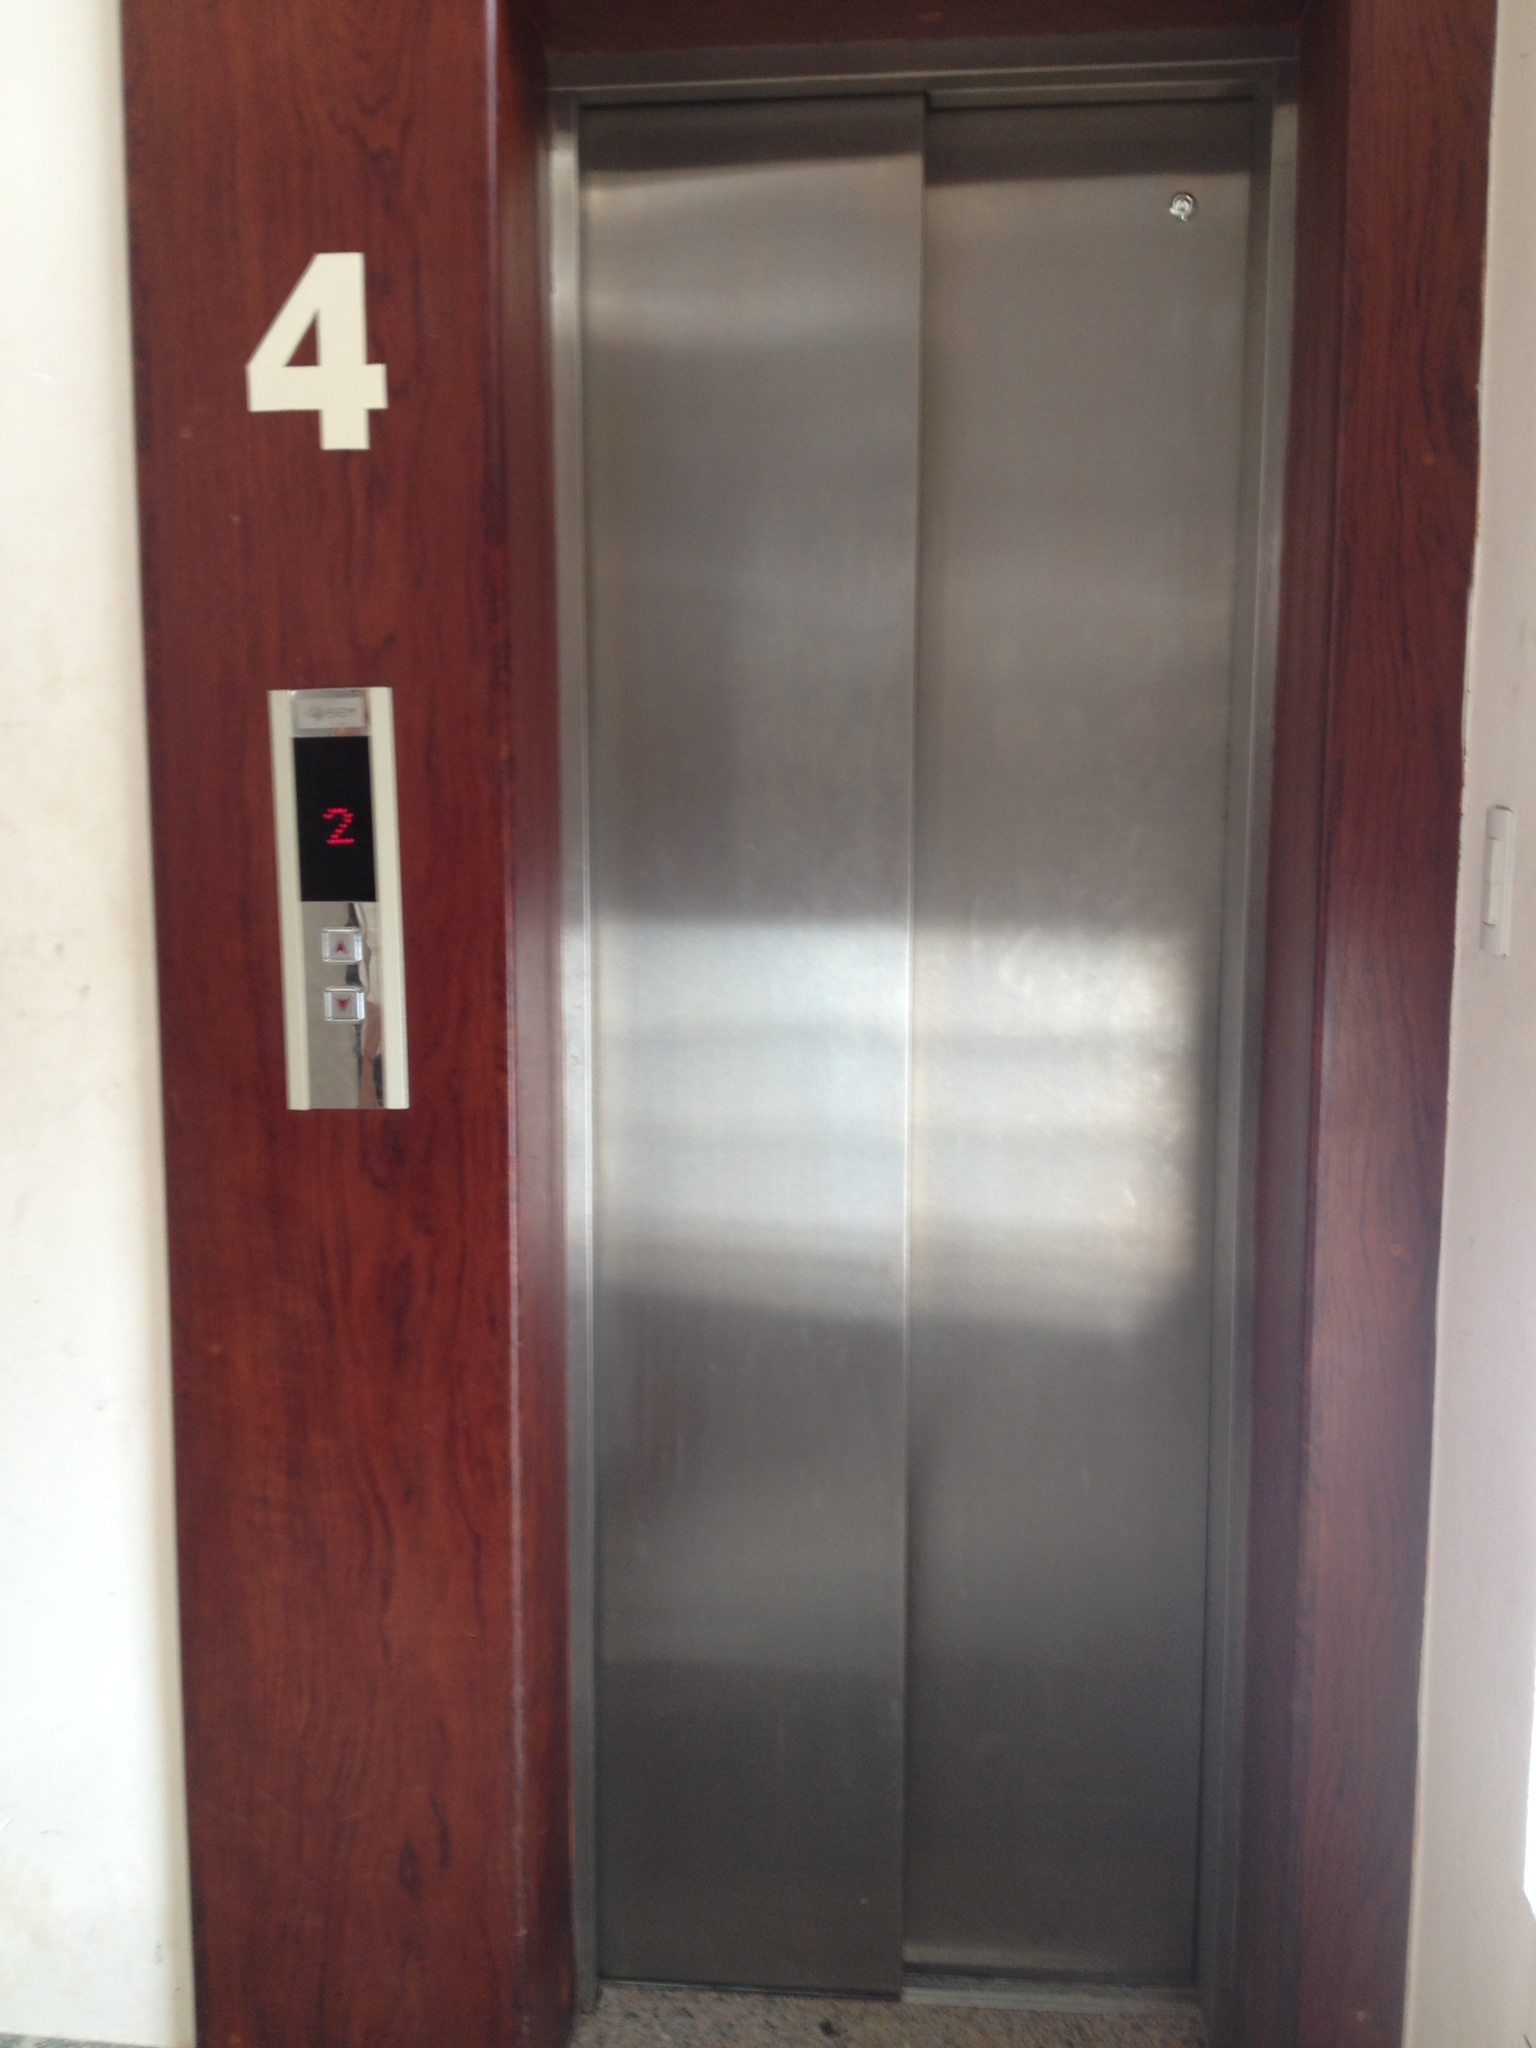 văn phòng cho thuê quận 4, CTV Office Building, office for lease in D4, HCMC